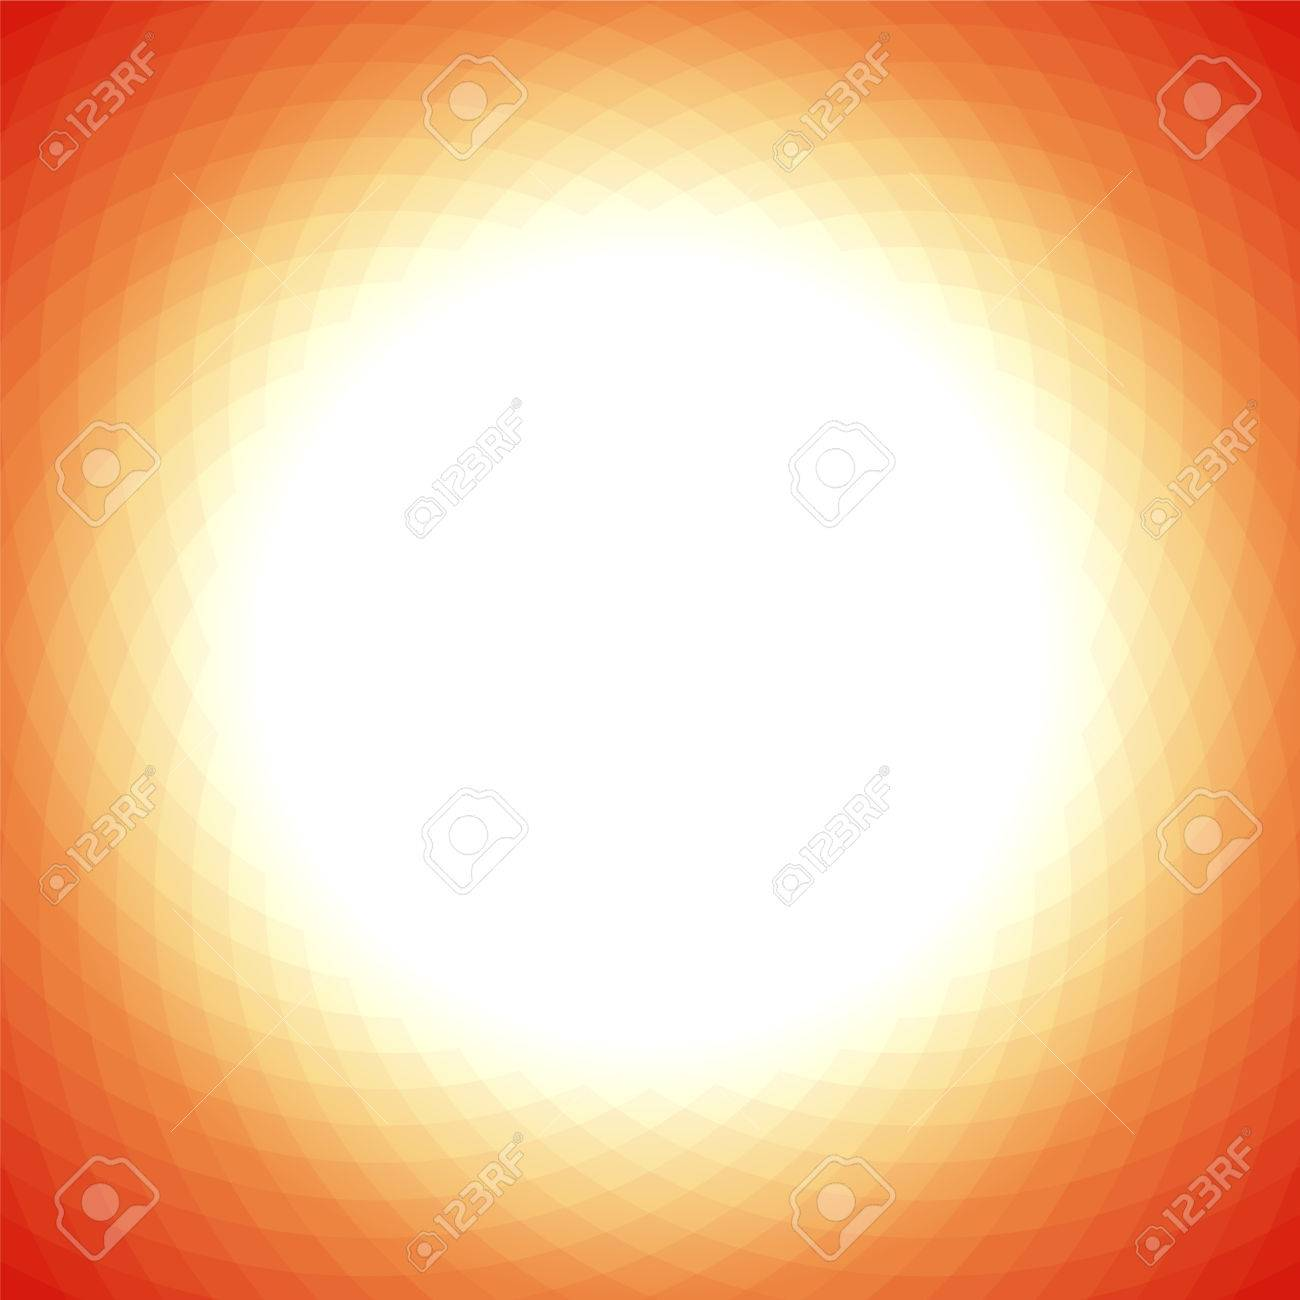 Background image center - Vector Modern Yellow Orange Geometric Background With White Center